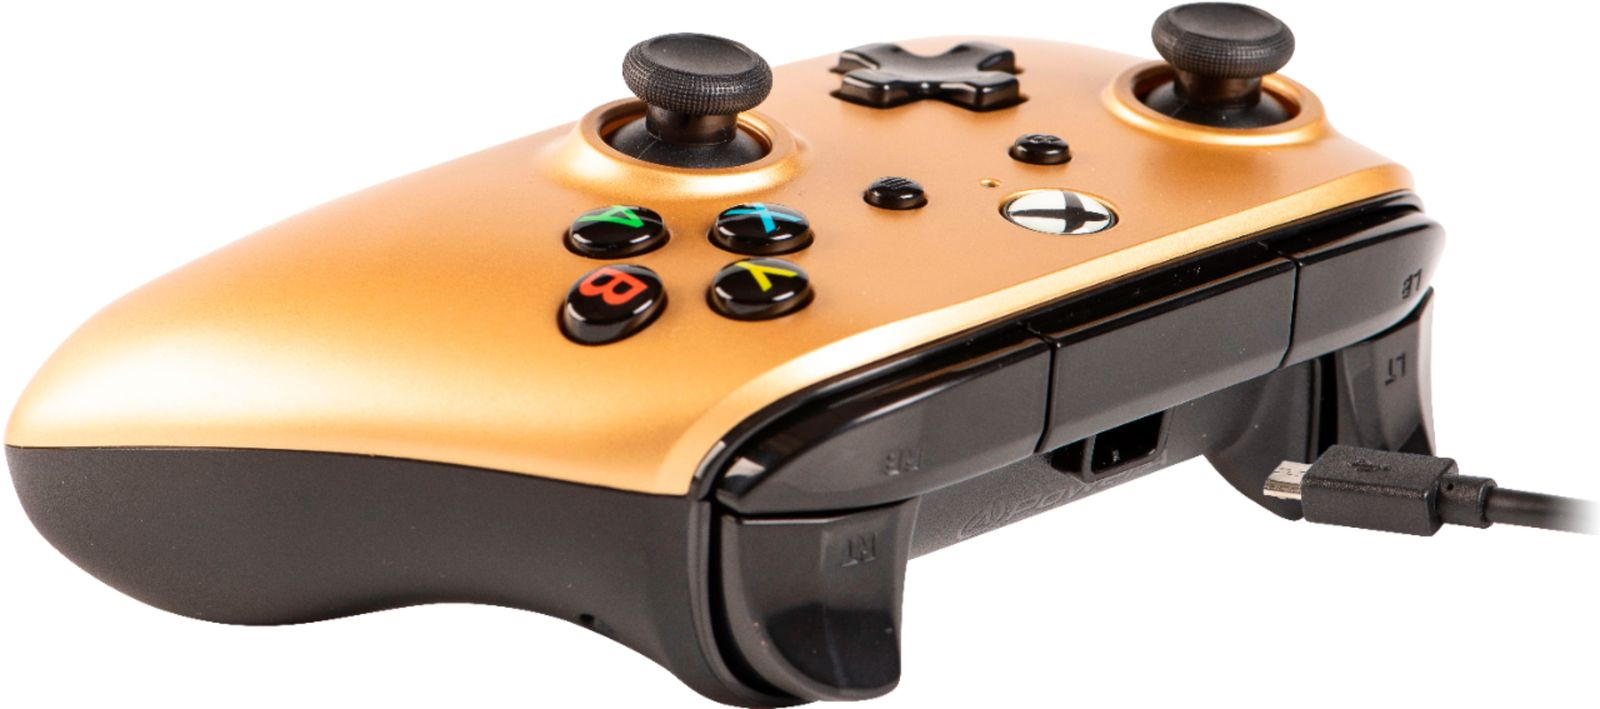 Xbox One Enhanced Wired Controller - Gold - Xbox One